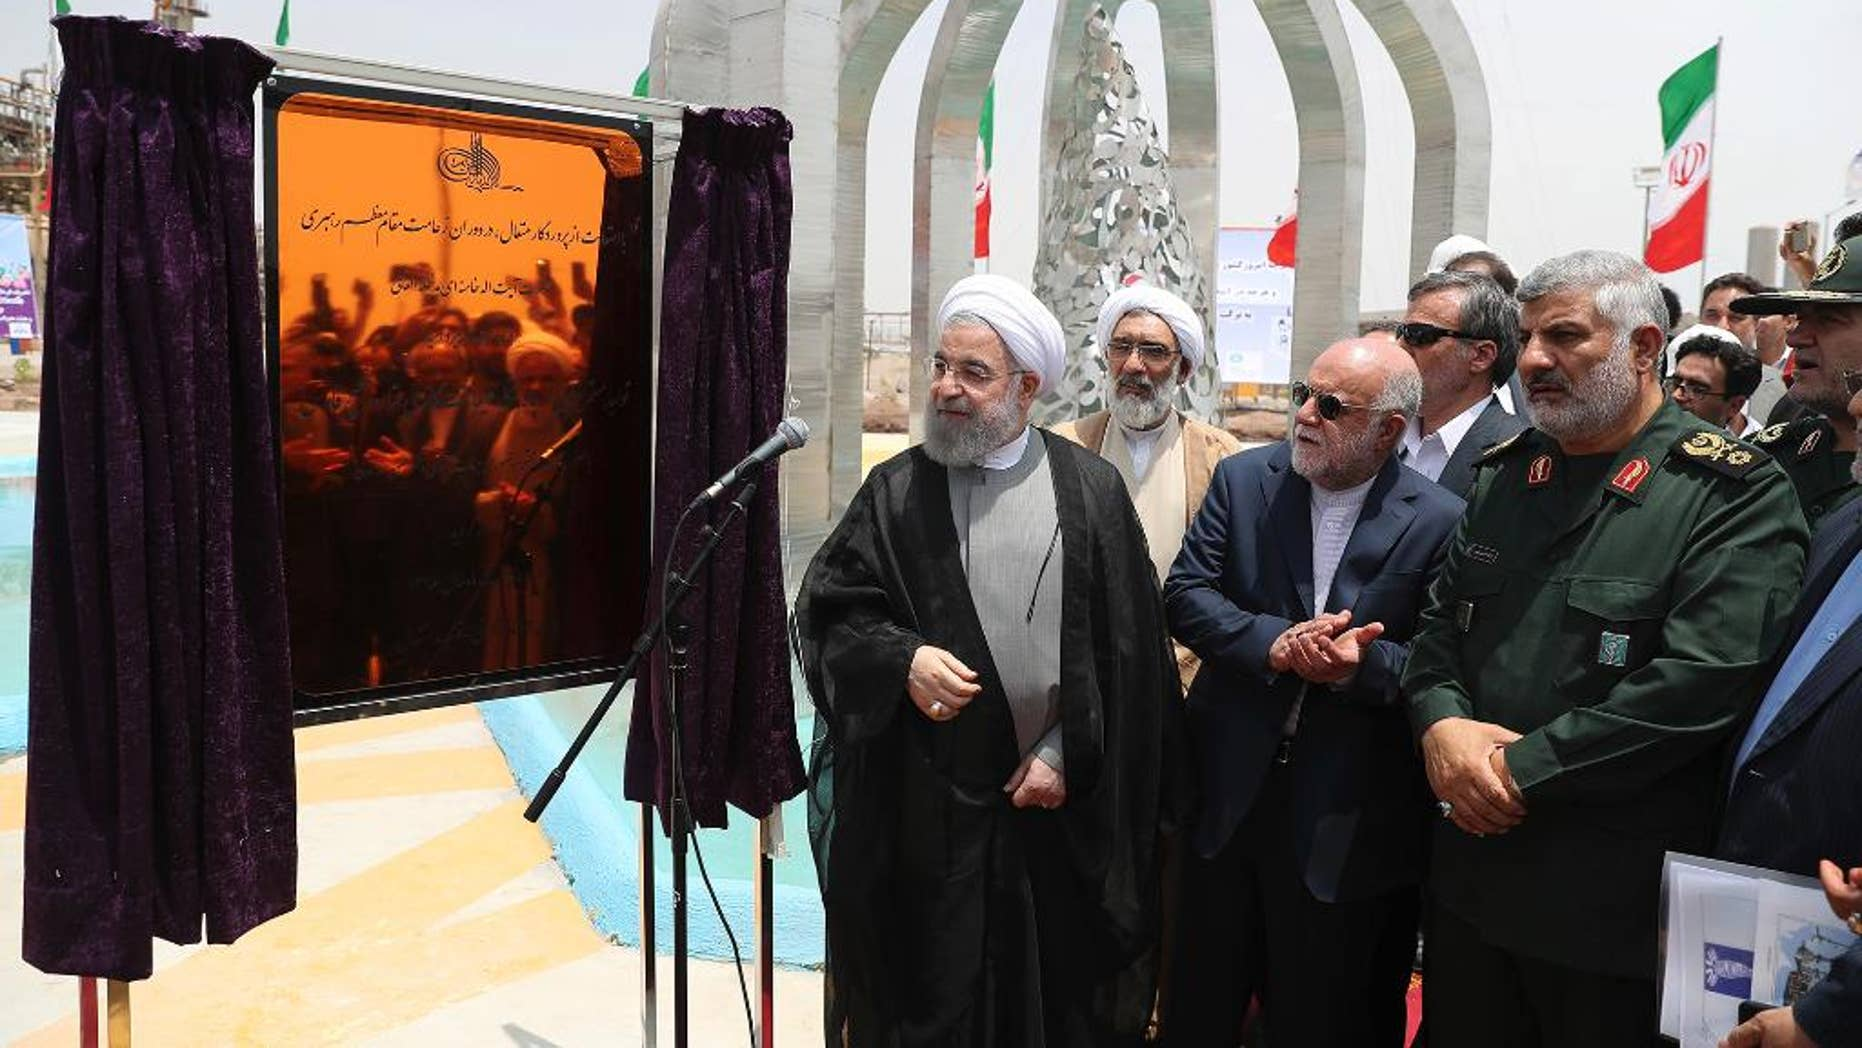 In this photo released by an official website of the office of the Iranian Presidency Sunday, April 30, 2017, Iranian President Hassan Rouhani, center left, inaugurates a new refinery that produces some 12 million liters (3.17 million gallons) of gas in its first phase, in Bandar Abbas, some 750 miles (1,205 kilometers) south of Tehran, Iran. Iran's official IRNA news agency is saying the country has become self-sufficient in producing the amount of gas the country requires on a daily basis. (Iranian Presidency Office via AP)